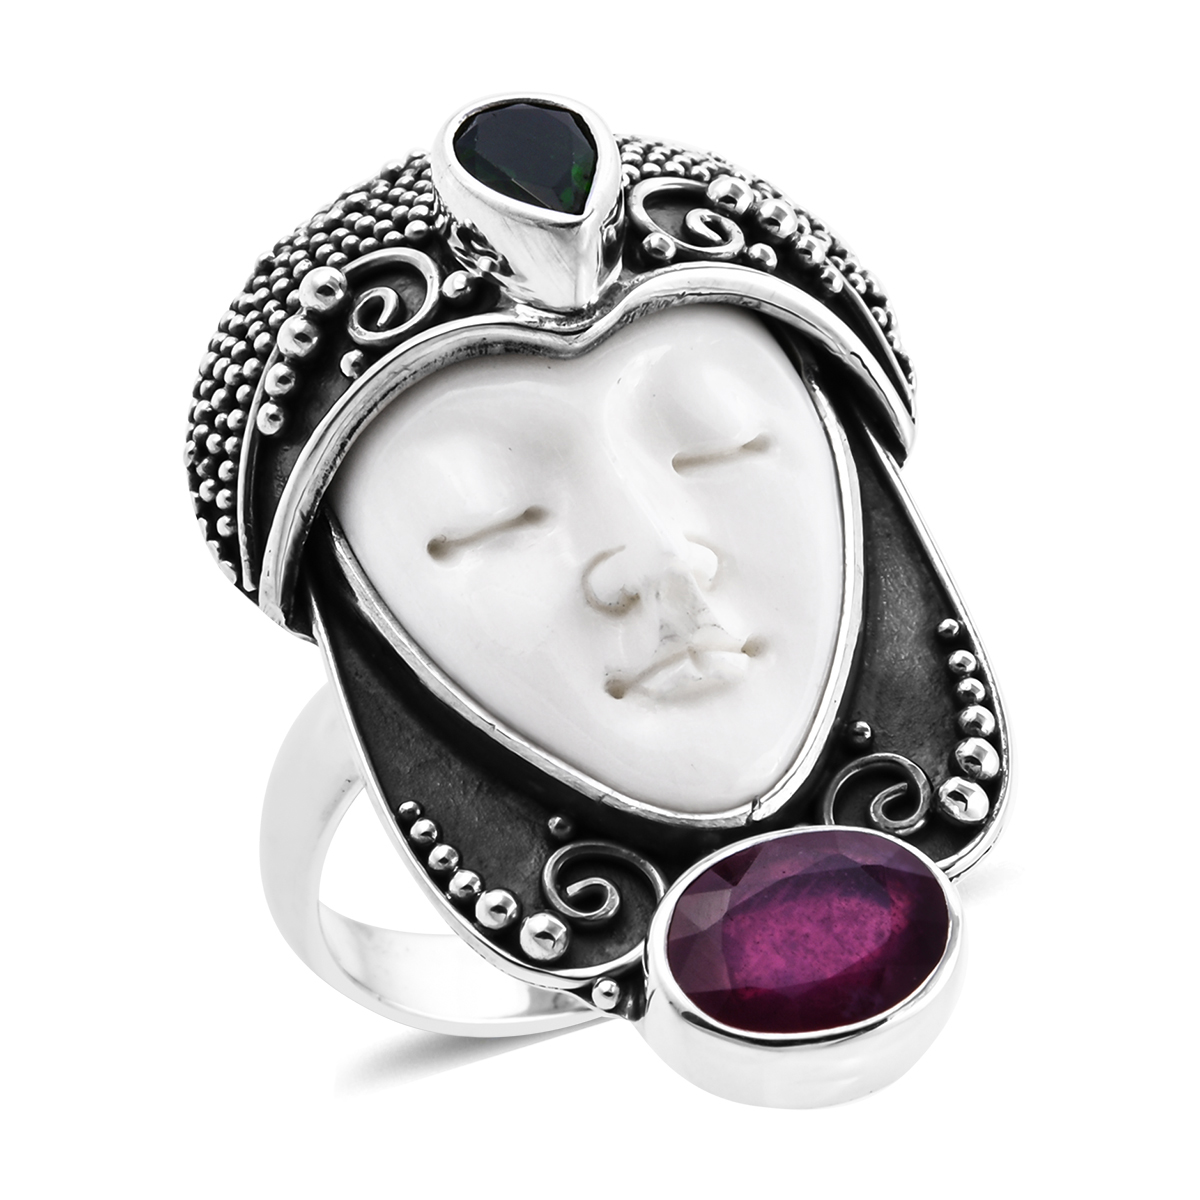 Bali Goddess Carved Bone, Multi Gemstone Ring in Sterling Silver (Size 7.0) 3.42 ctw